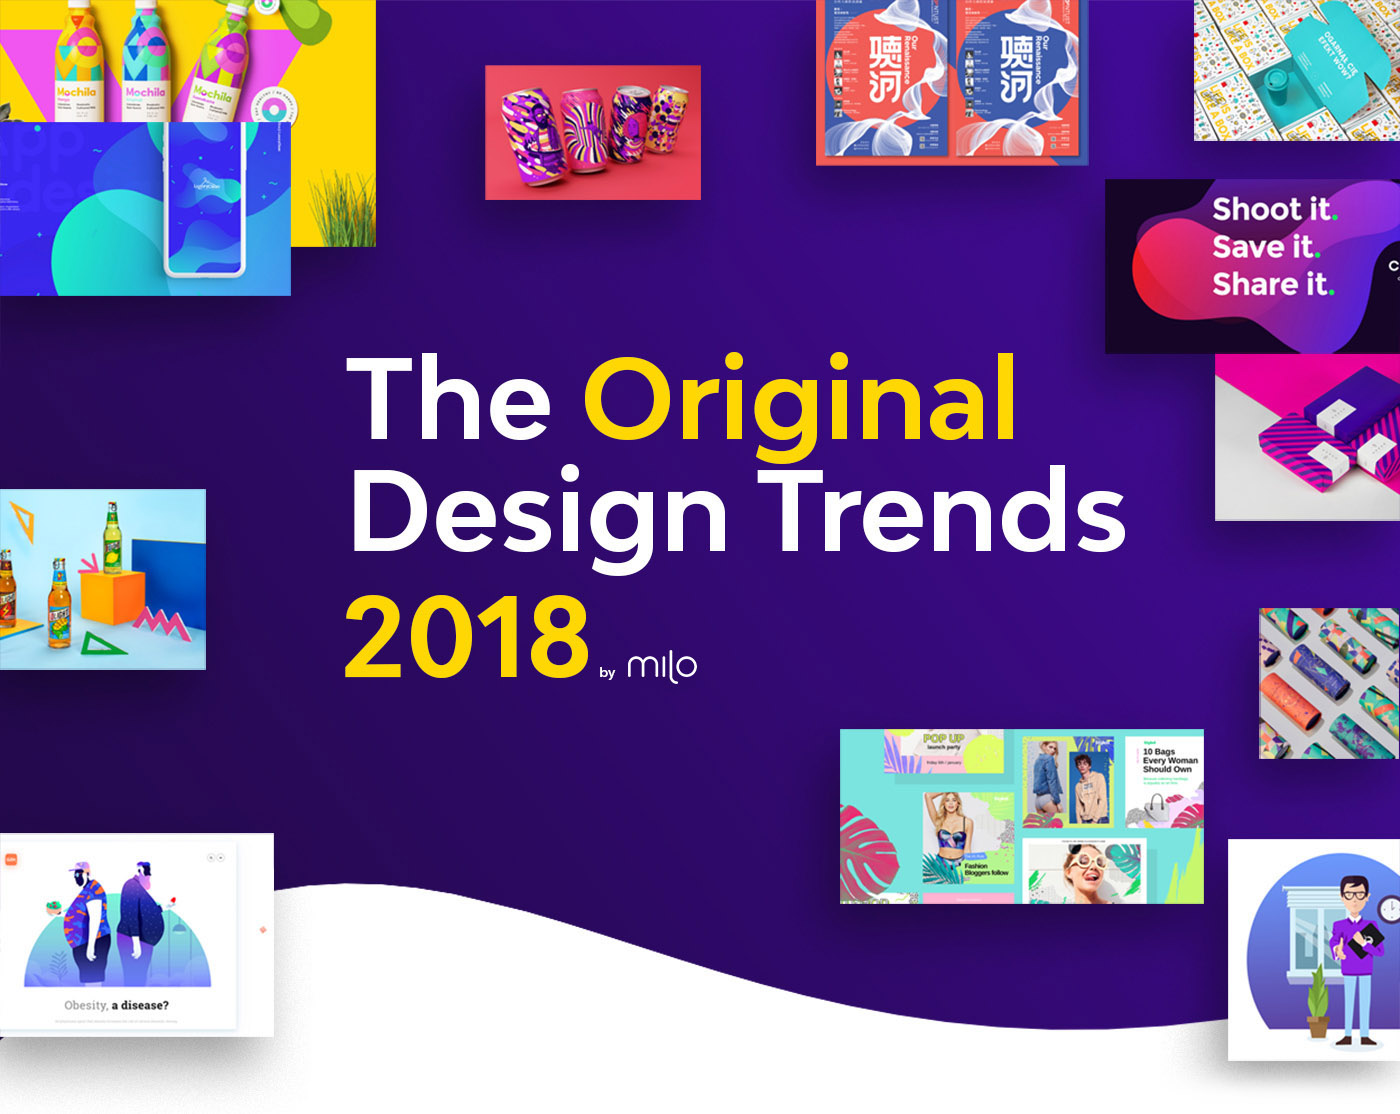 2018 design trends guide by milo on behance